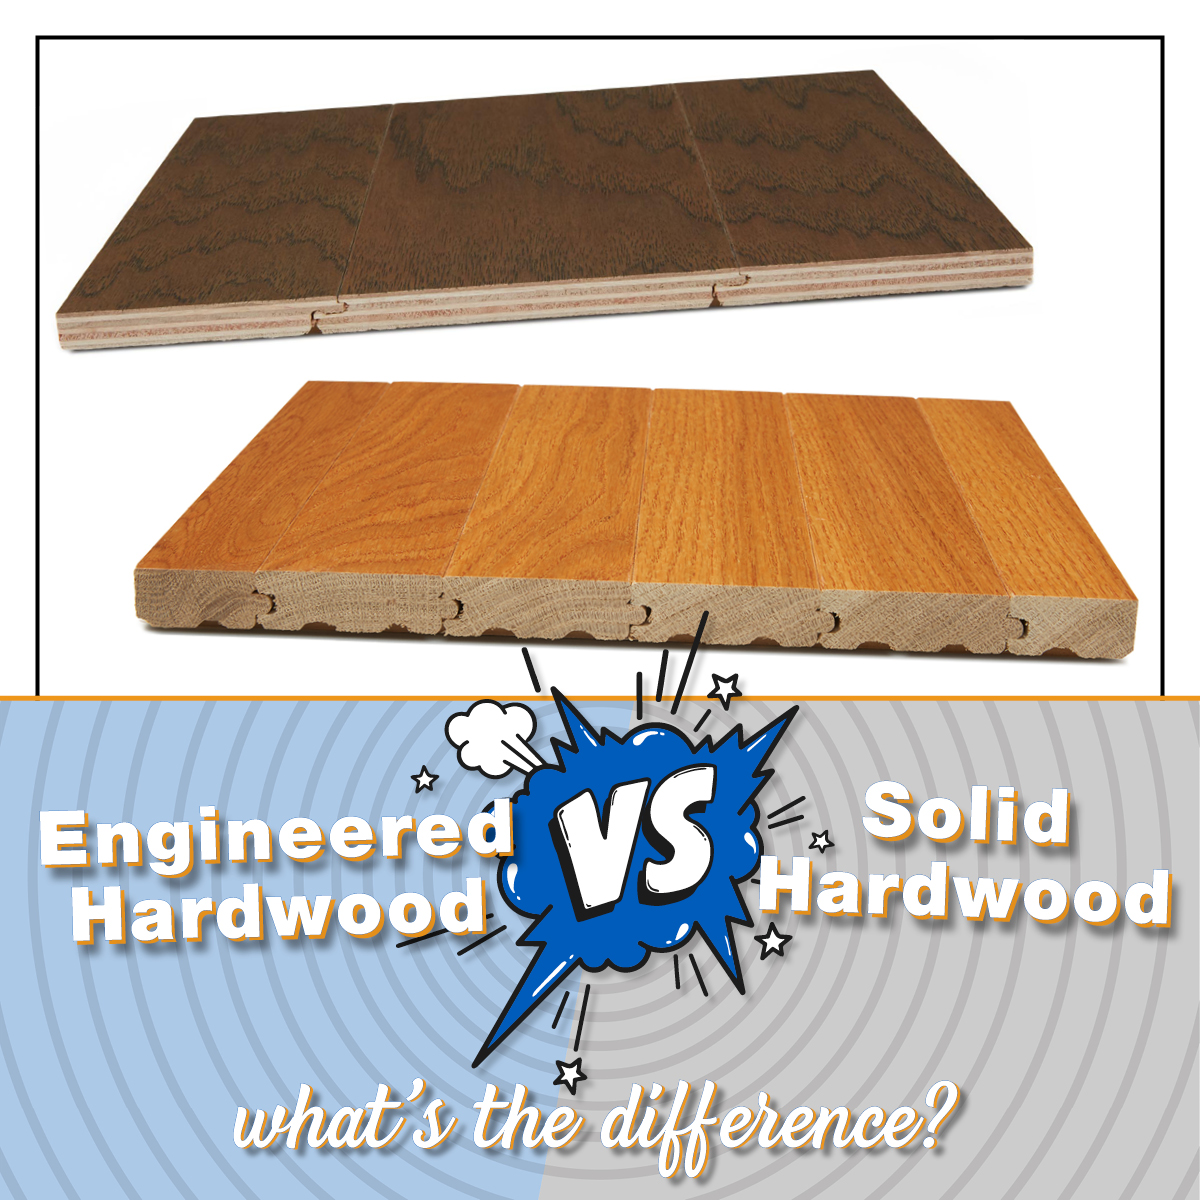 What's the Difference Between Engineered HArdwood and Solid Hardwood